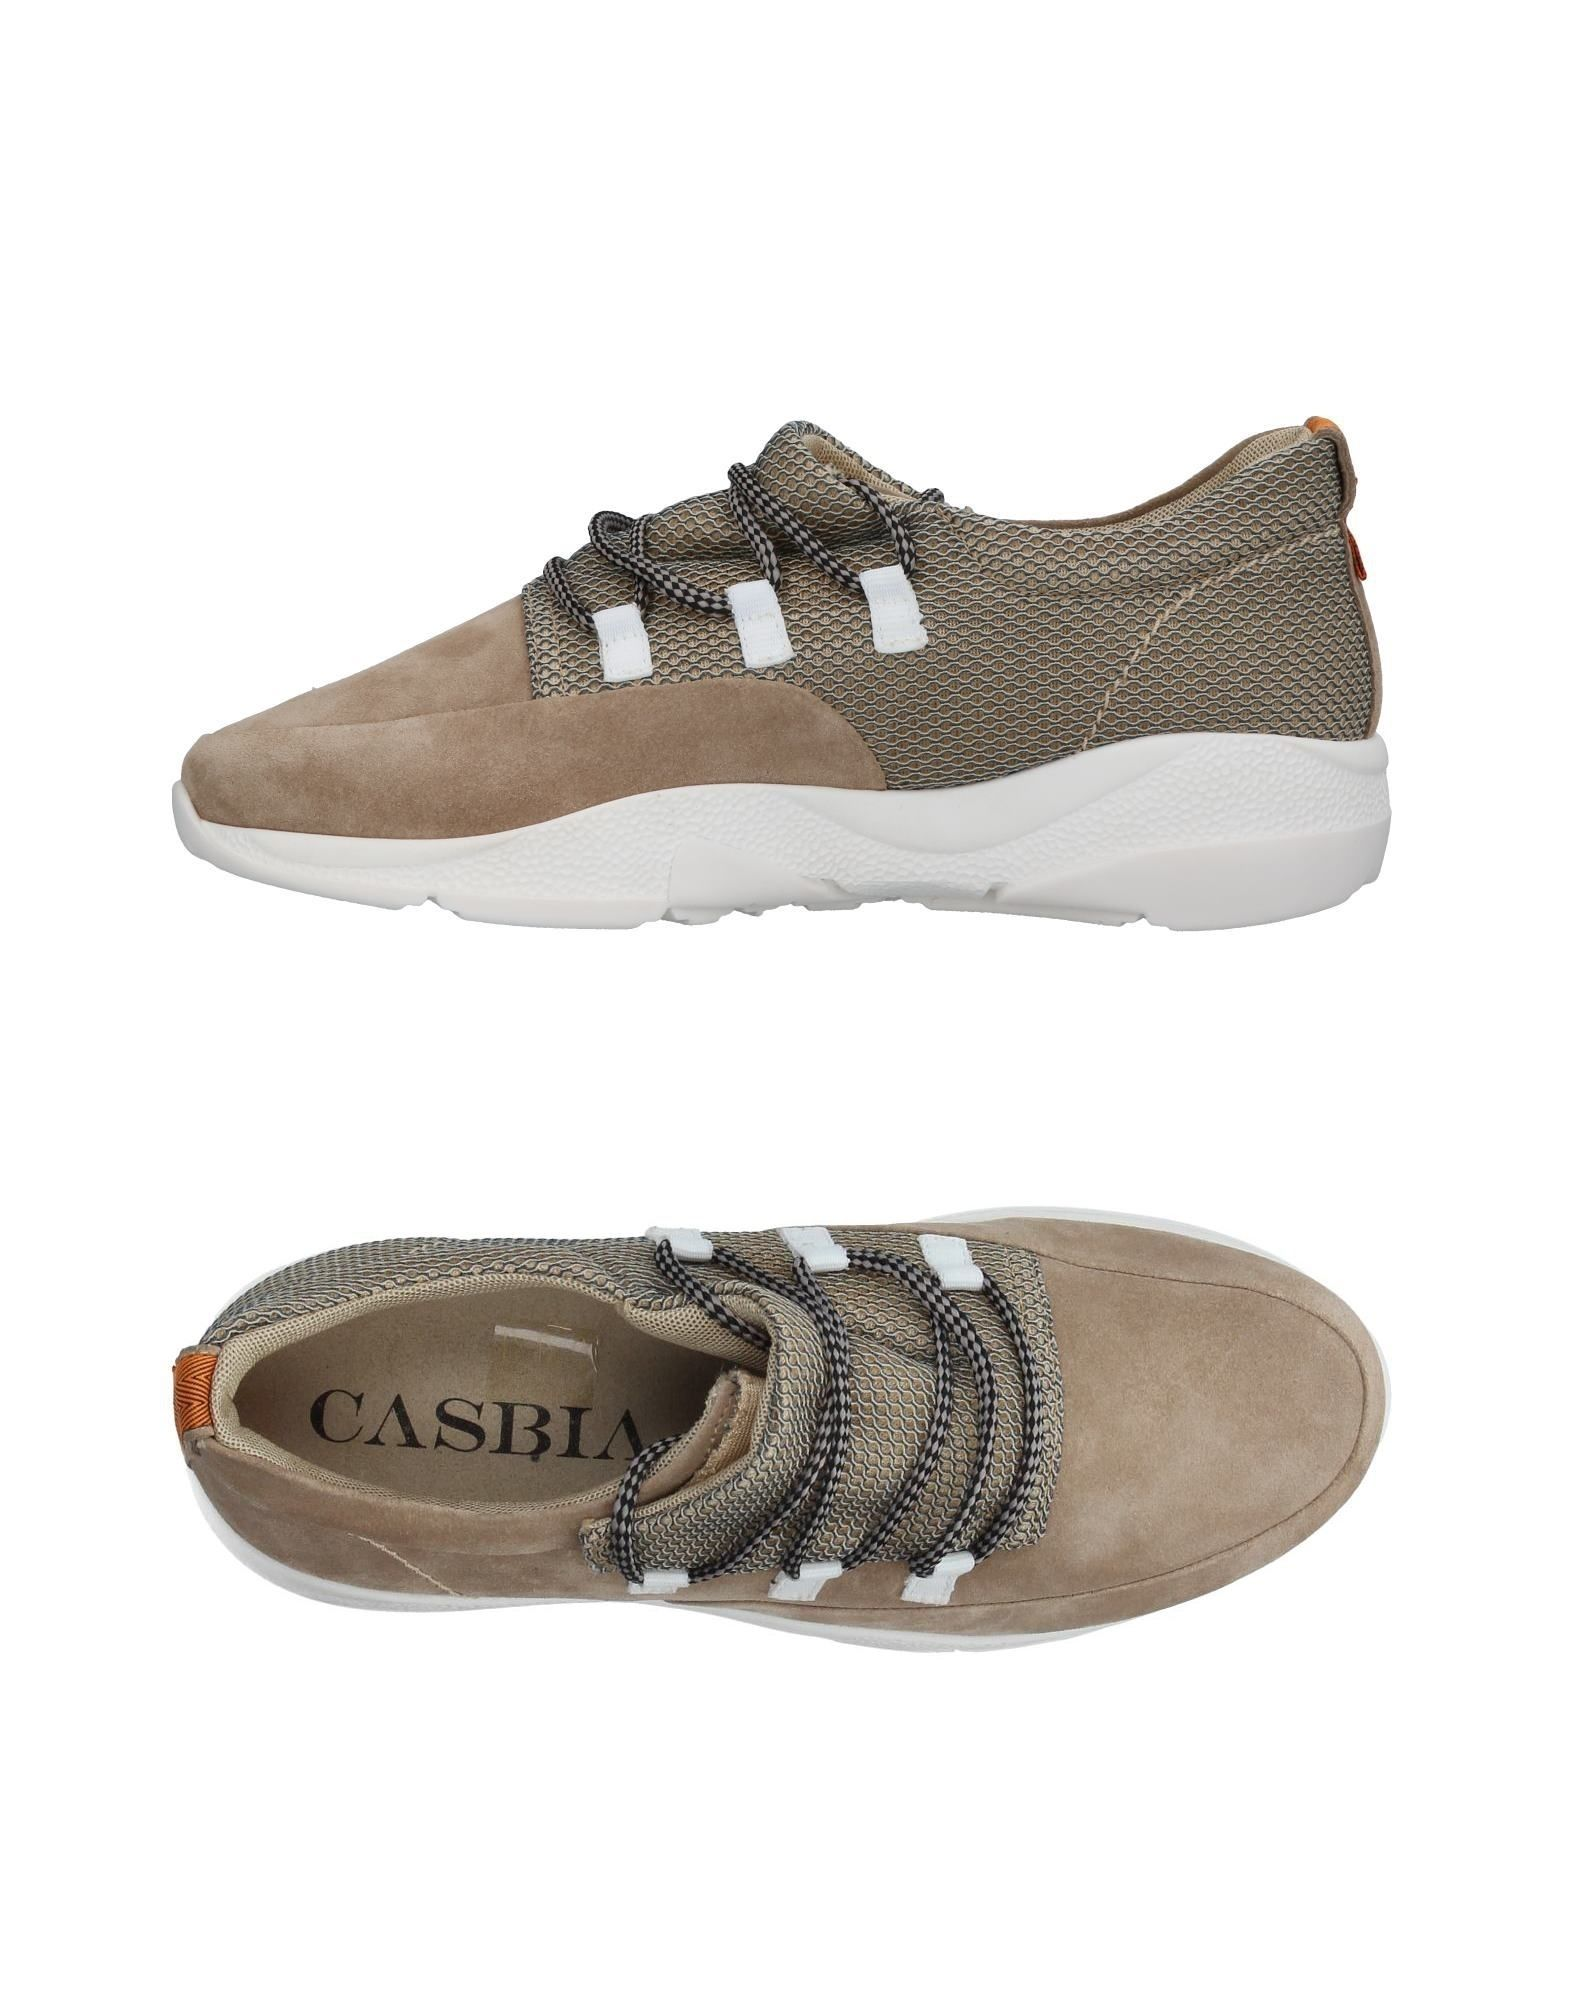 Sneakers Casbia Homme - Sneakers Casbia sur